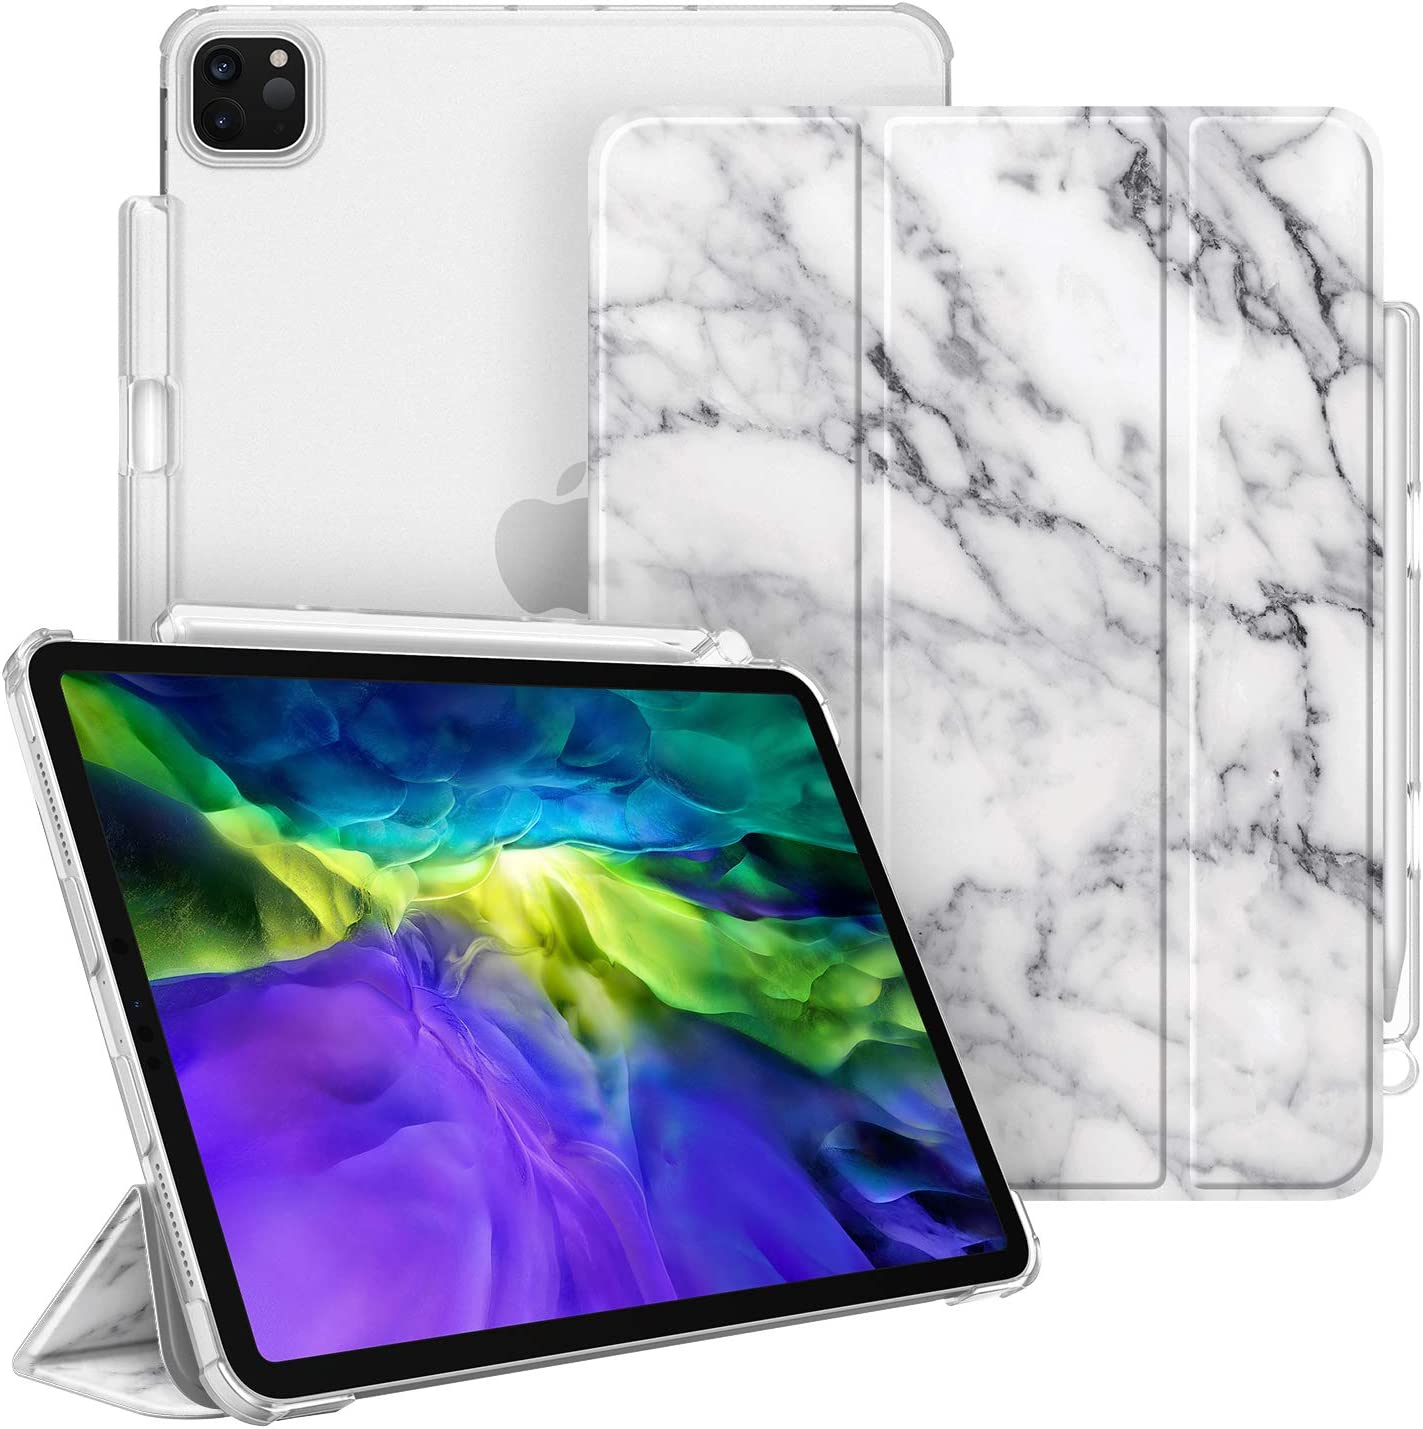 CaseBot Case for iPad Pro 11